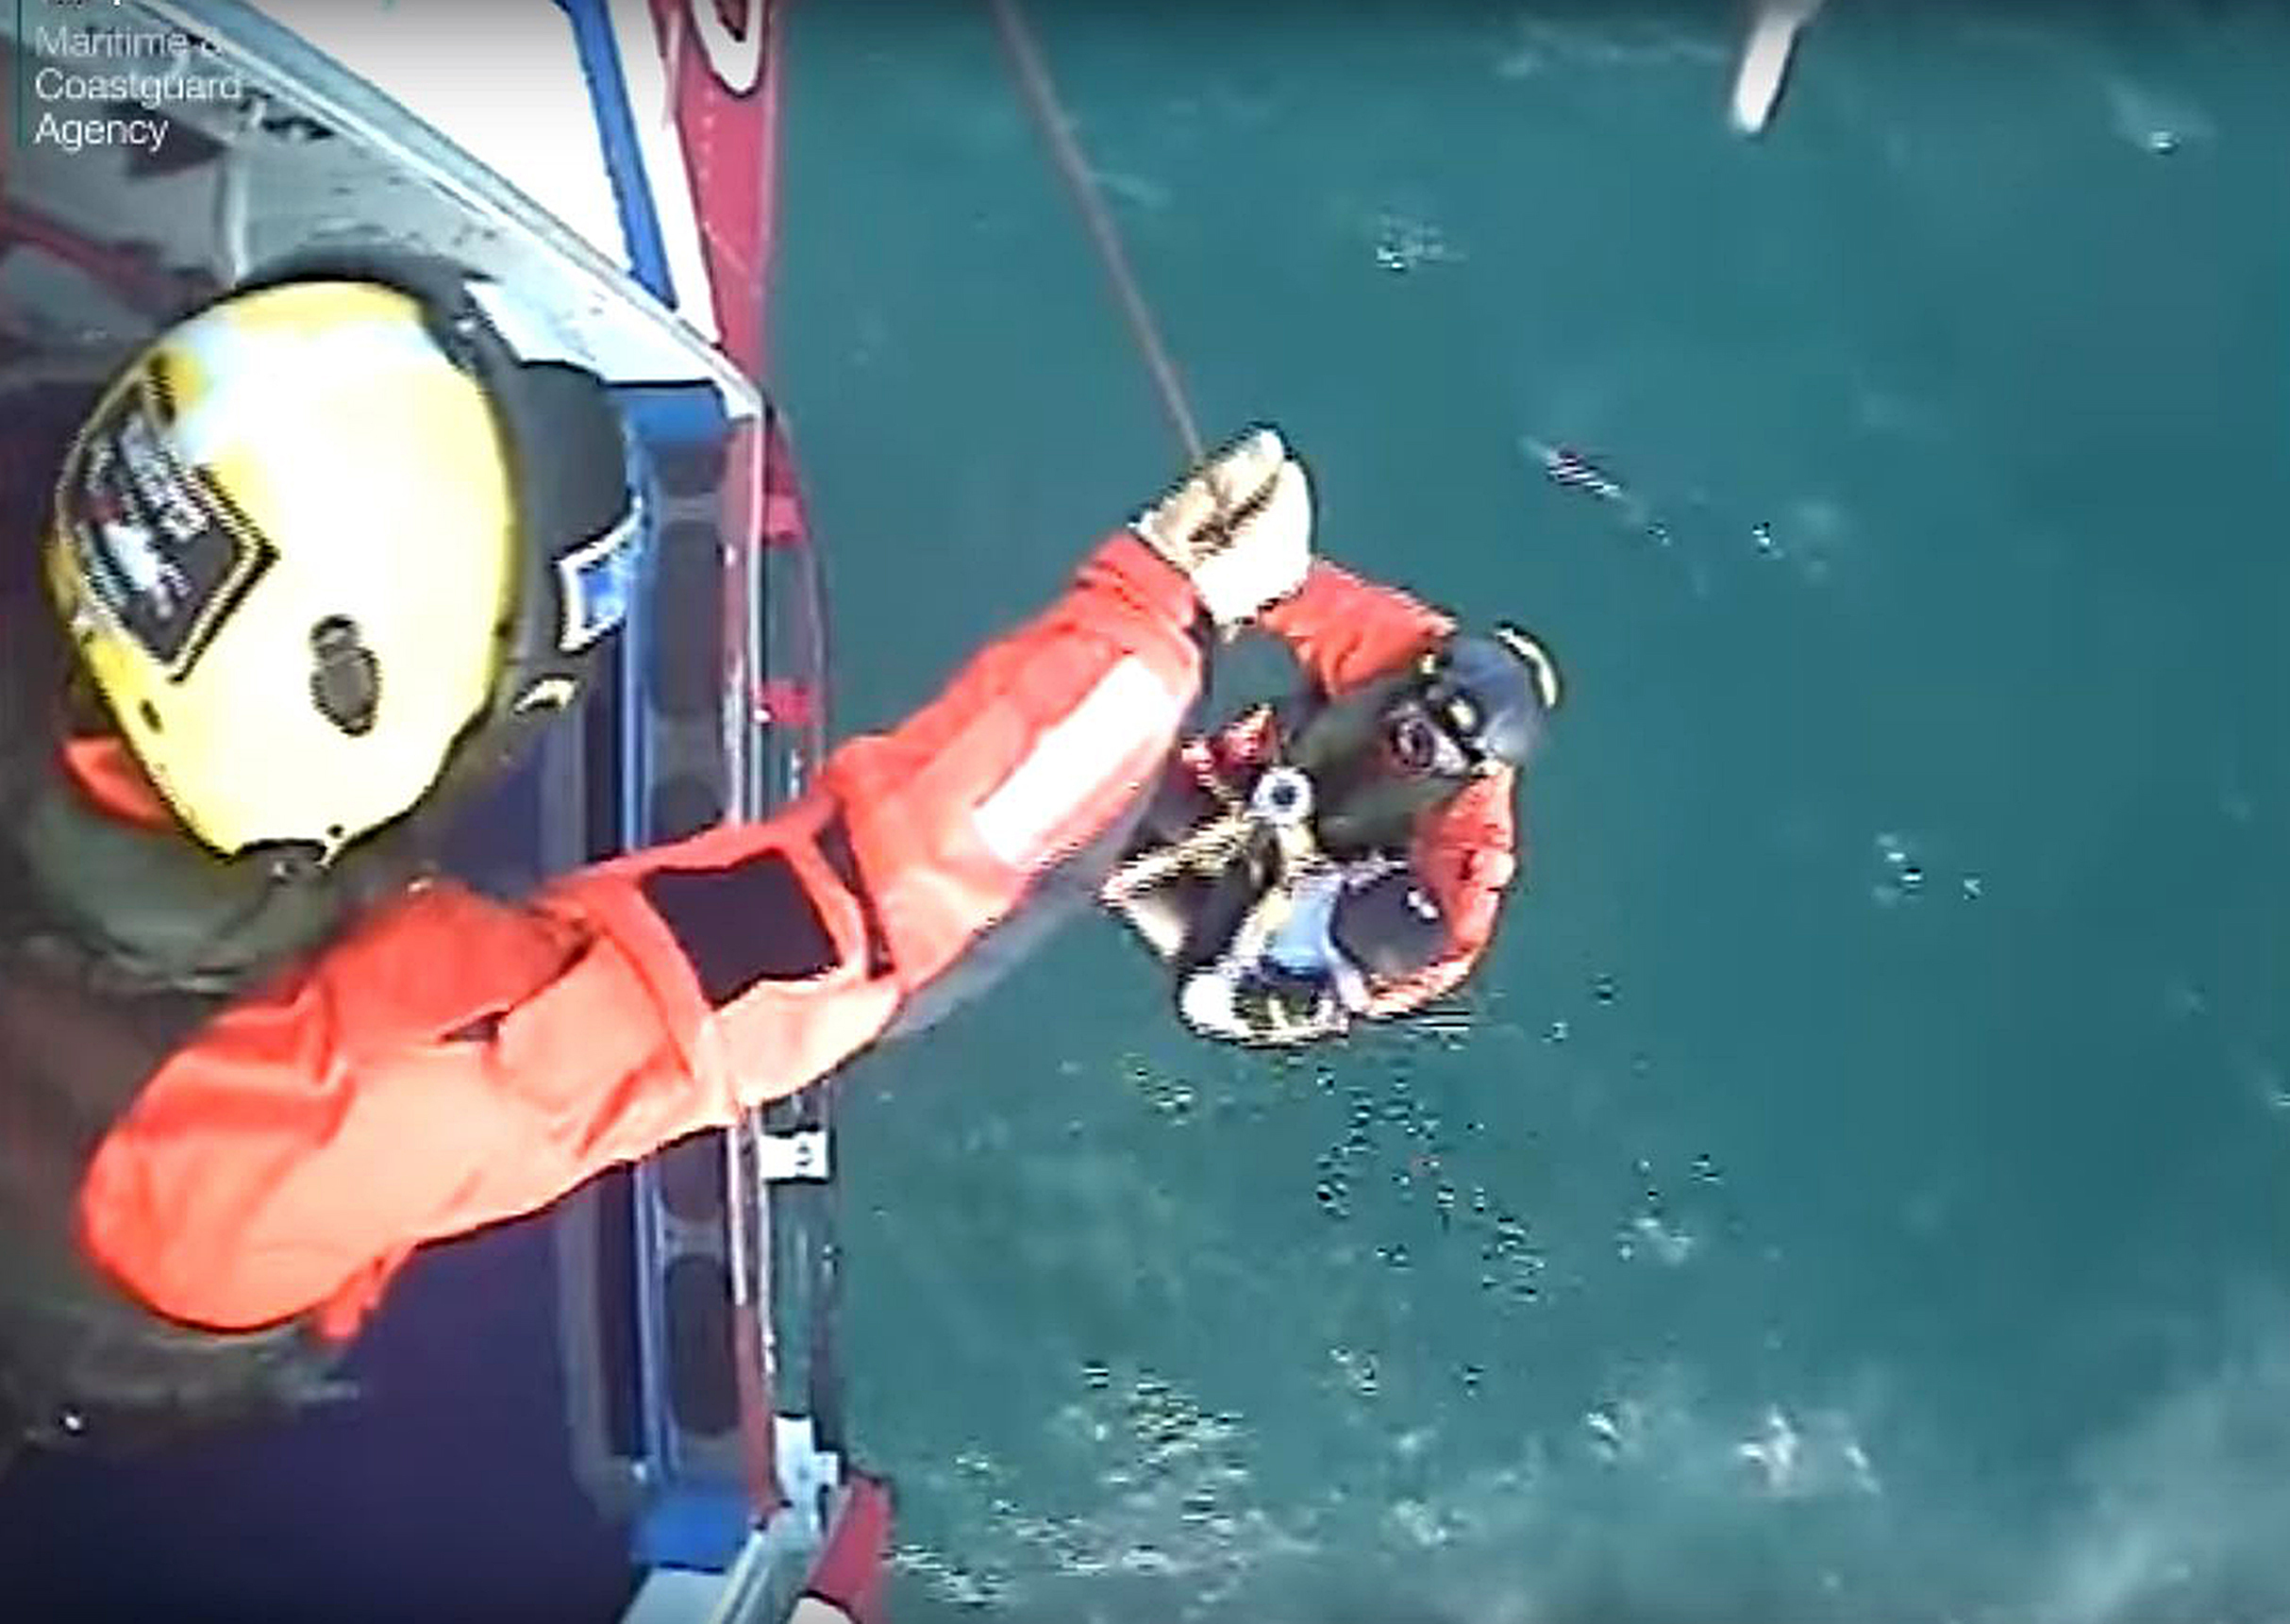 The moment surfer Matthew Bryce, who survived more than 30 hours stranded at sea on his board, was rescued. (Maritime &Coastguard Agency/PA Wire)